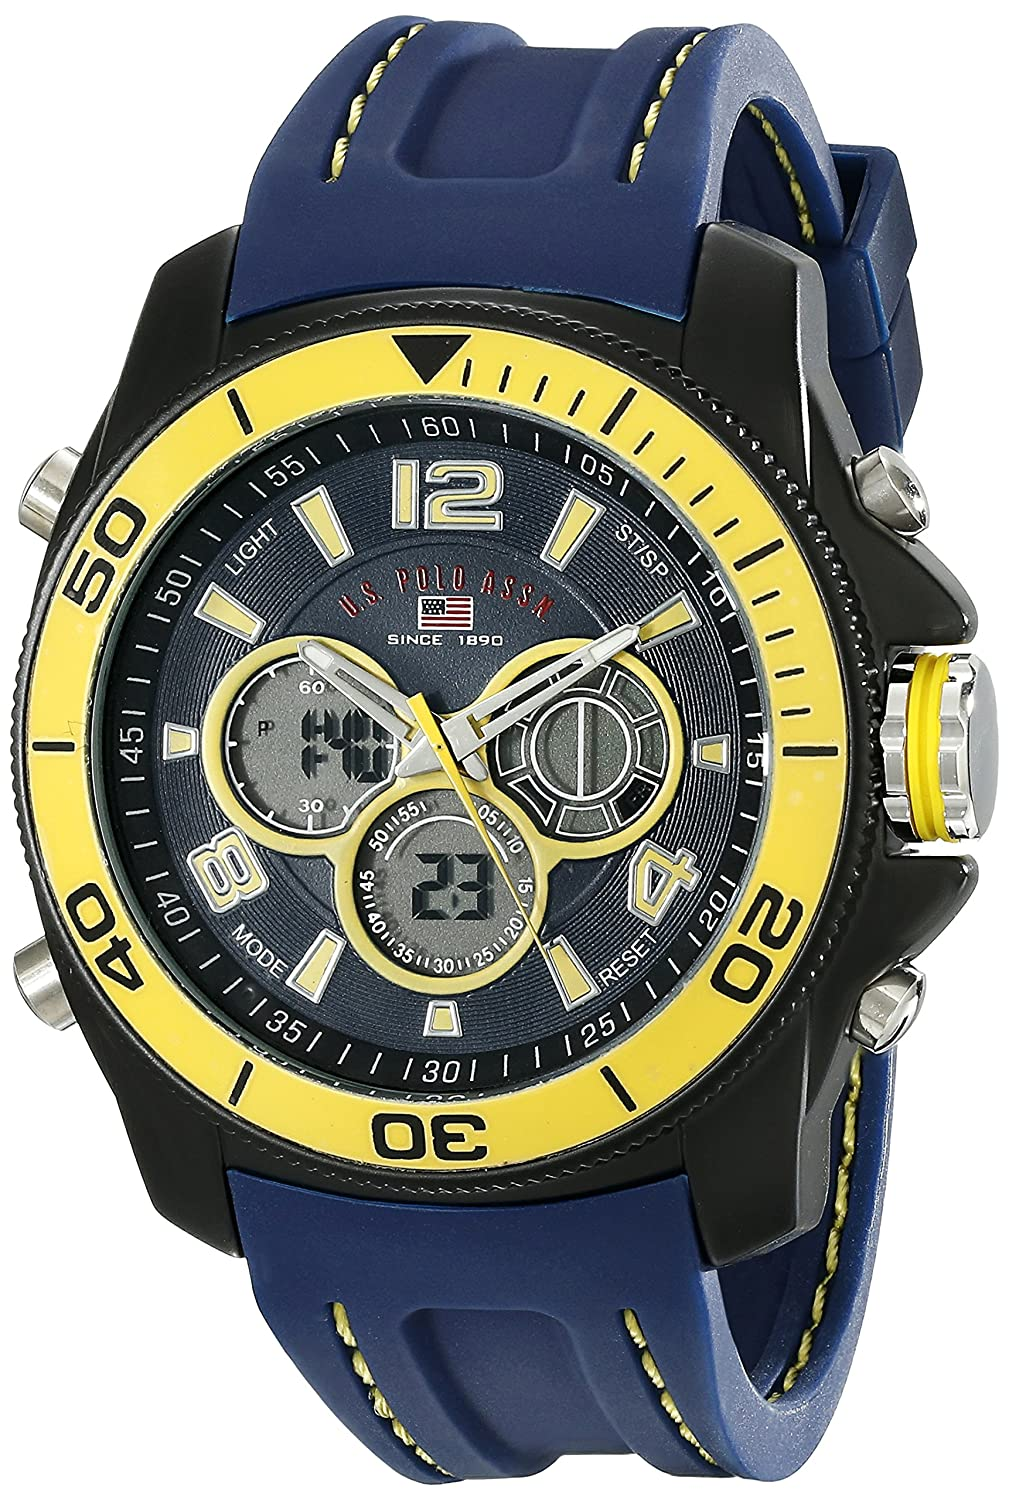 Reloj - U.S. Polo Assn. - para - US9322: Amazon.es: Relojes